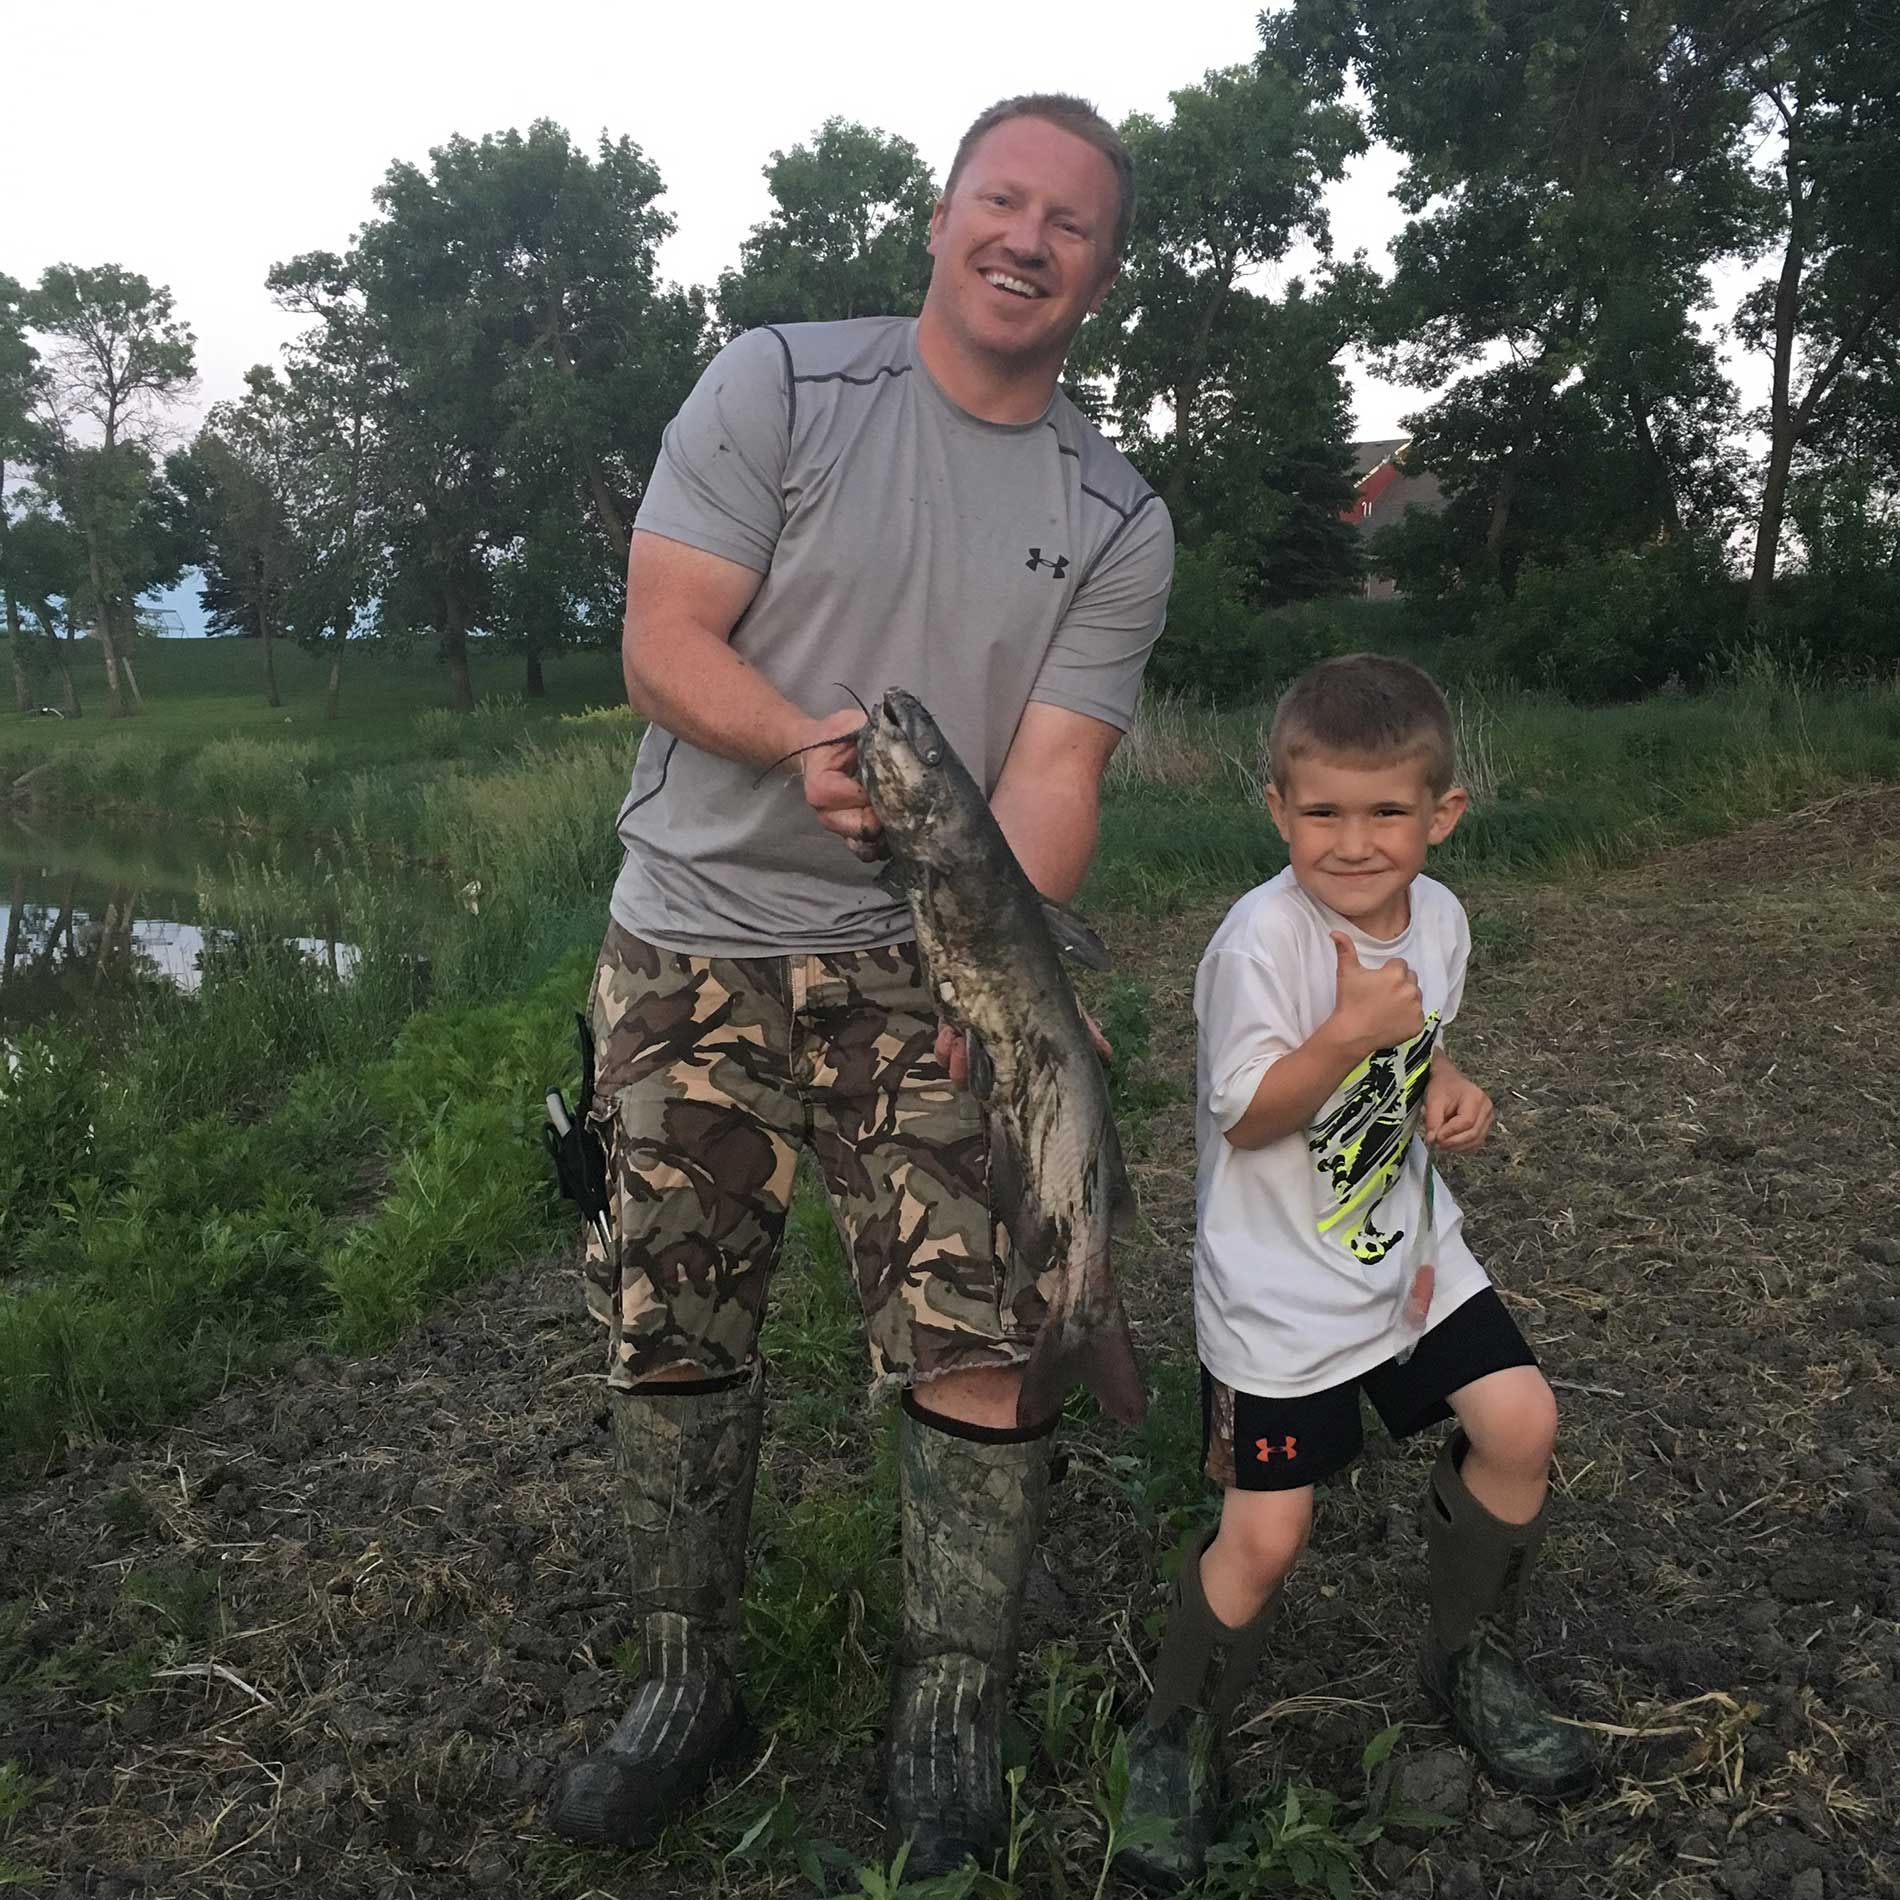 Reese and I with our catch